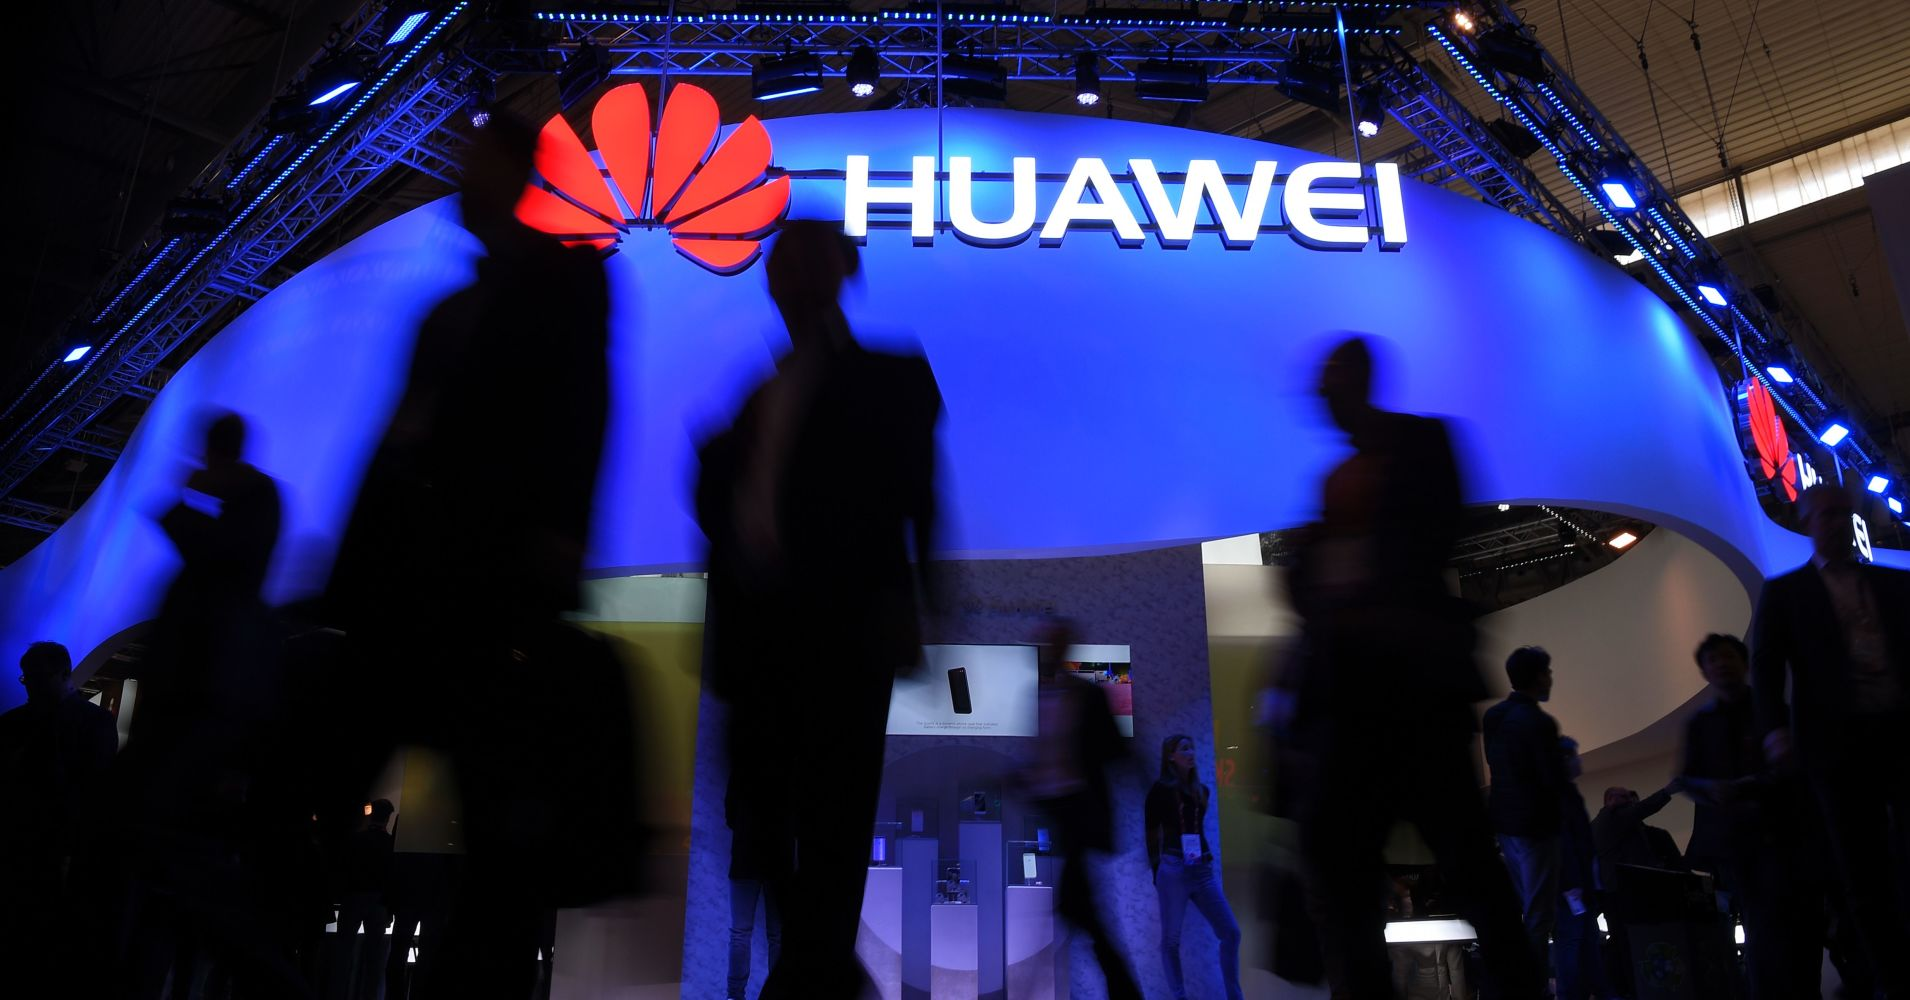 Germany says it's not ready to bar Huawei in potential US snub